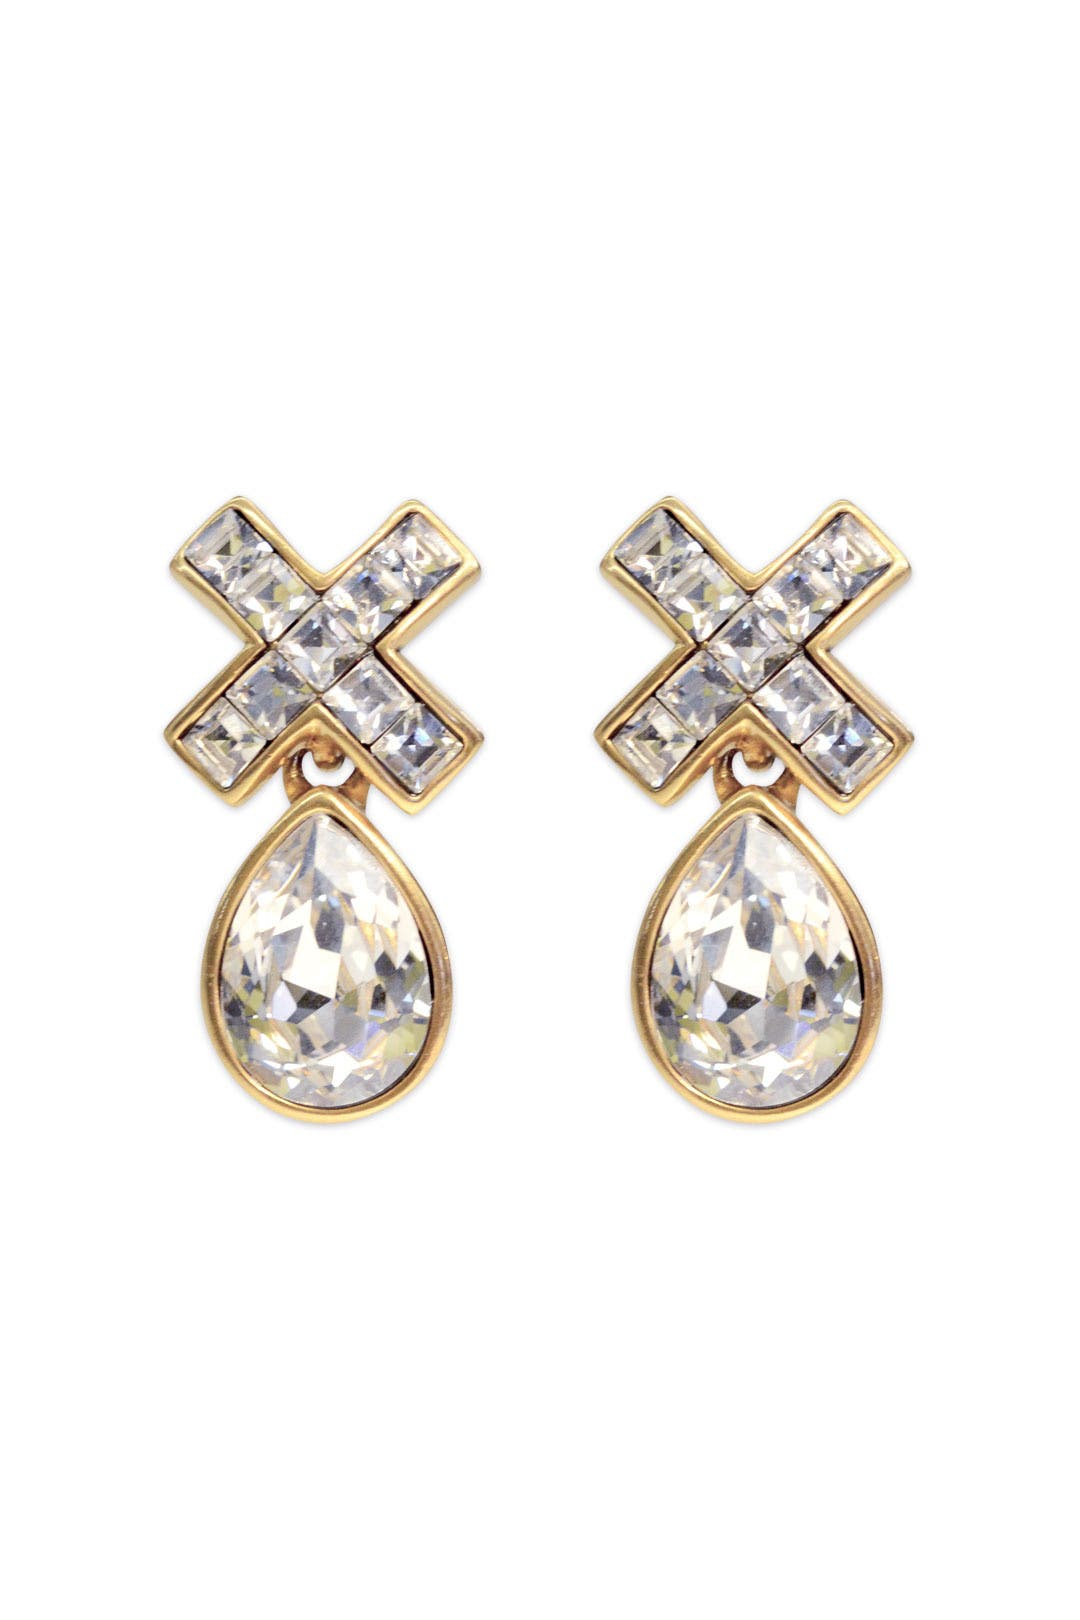 Crystal Marks the Spot Earring by Oscar de la Renta